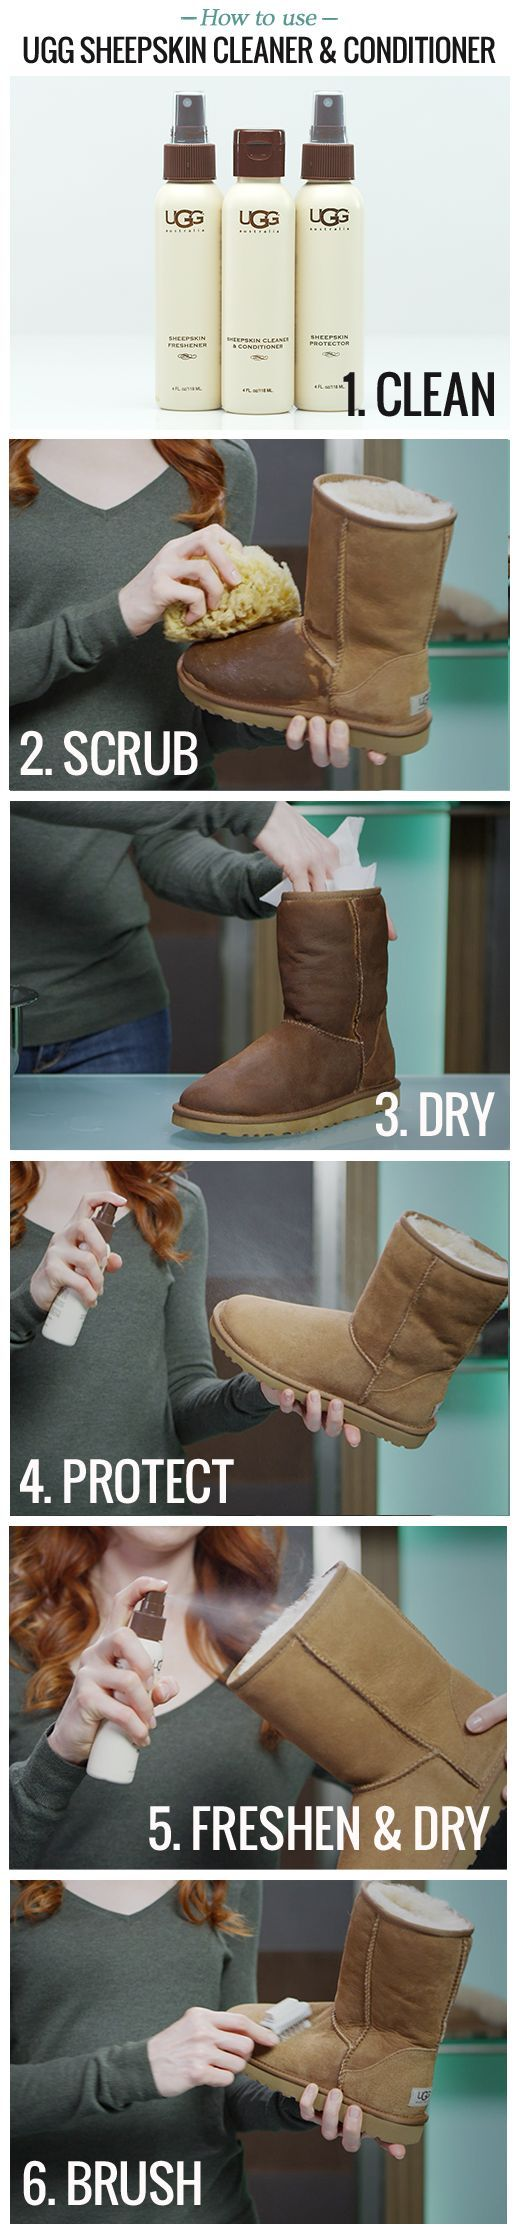 a61d4c52ec5 How to clean UGG boots: Keep your favorite UGG boots looking their ...